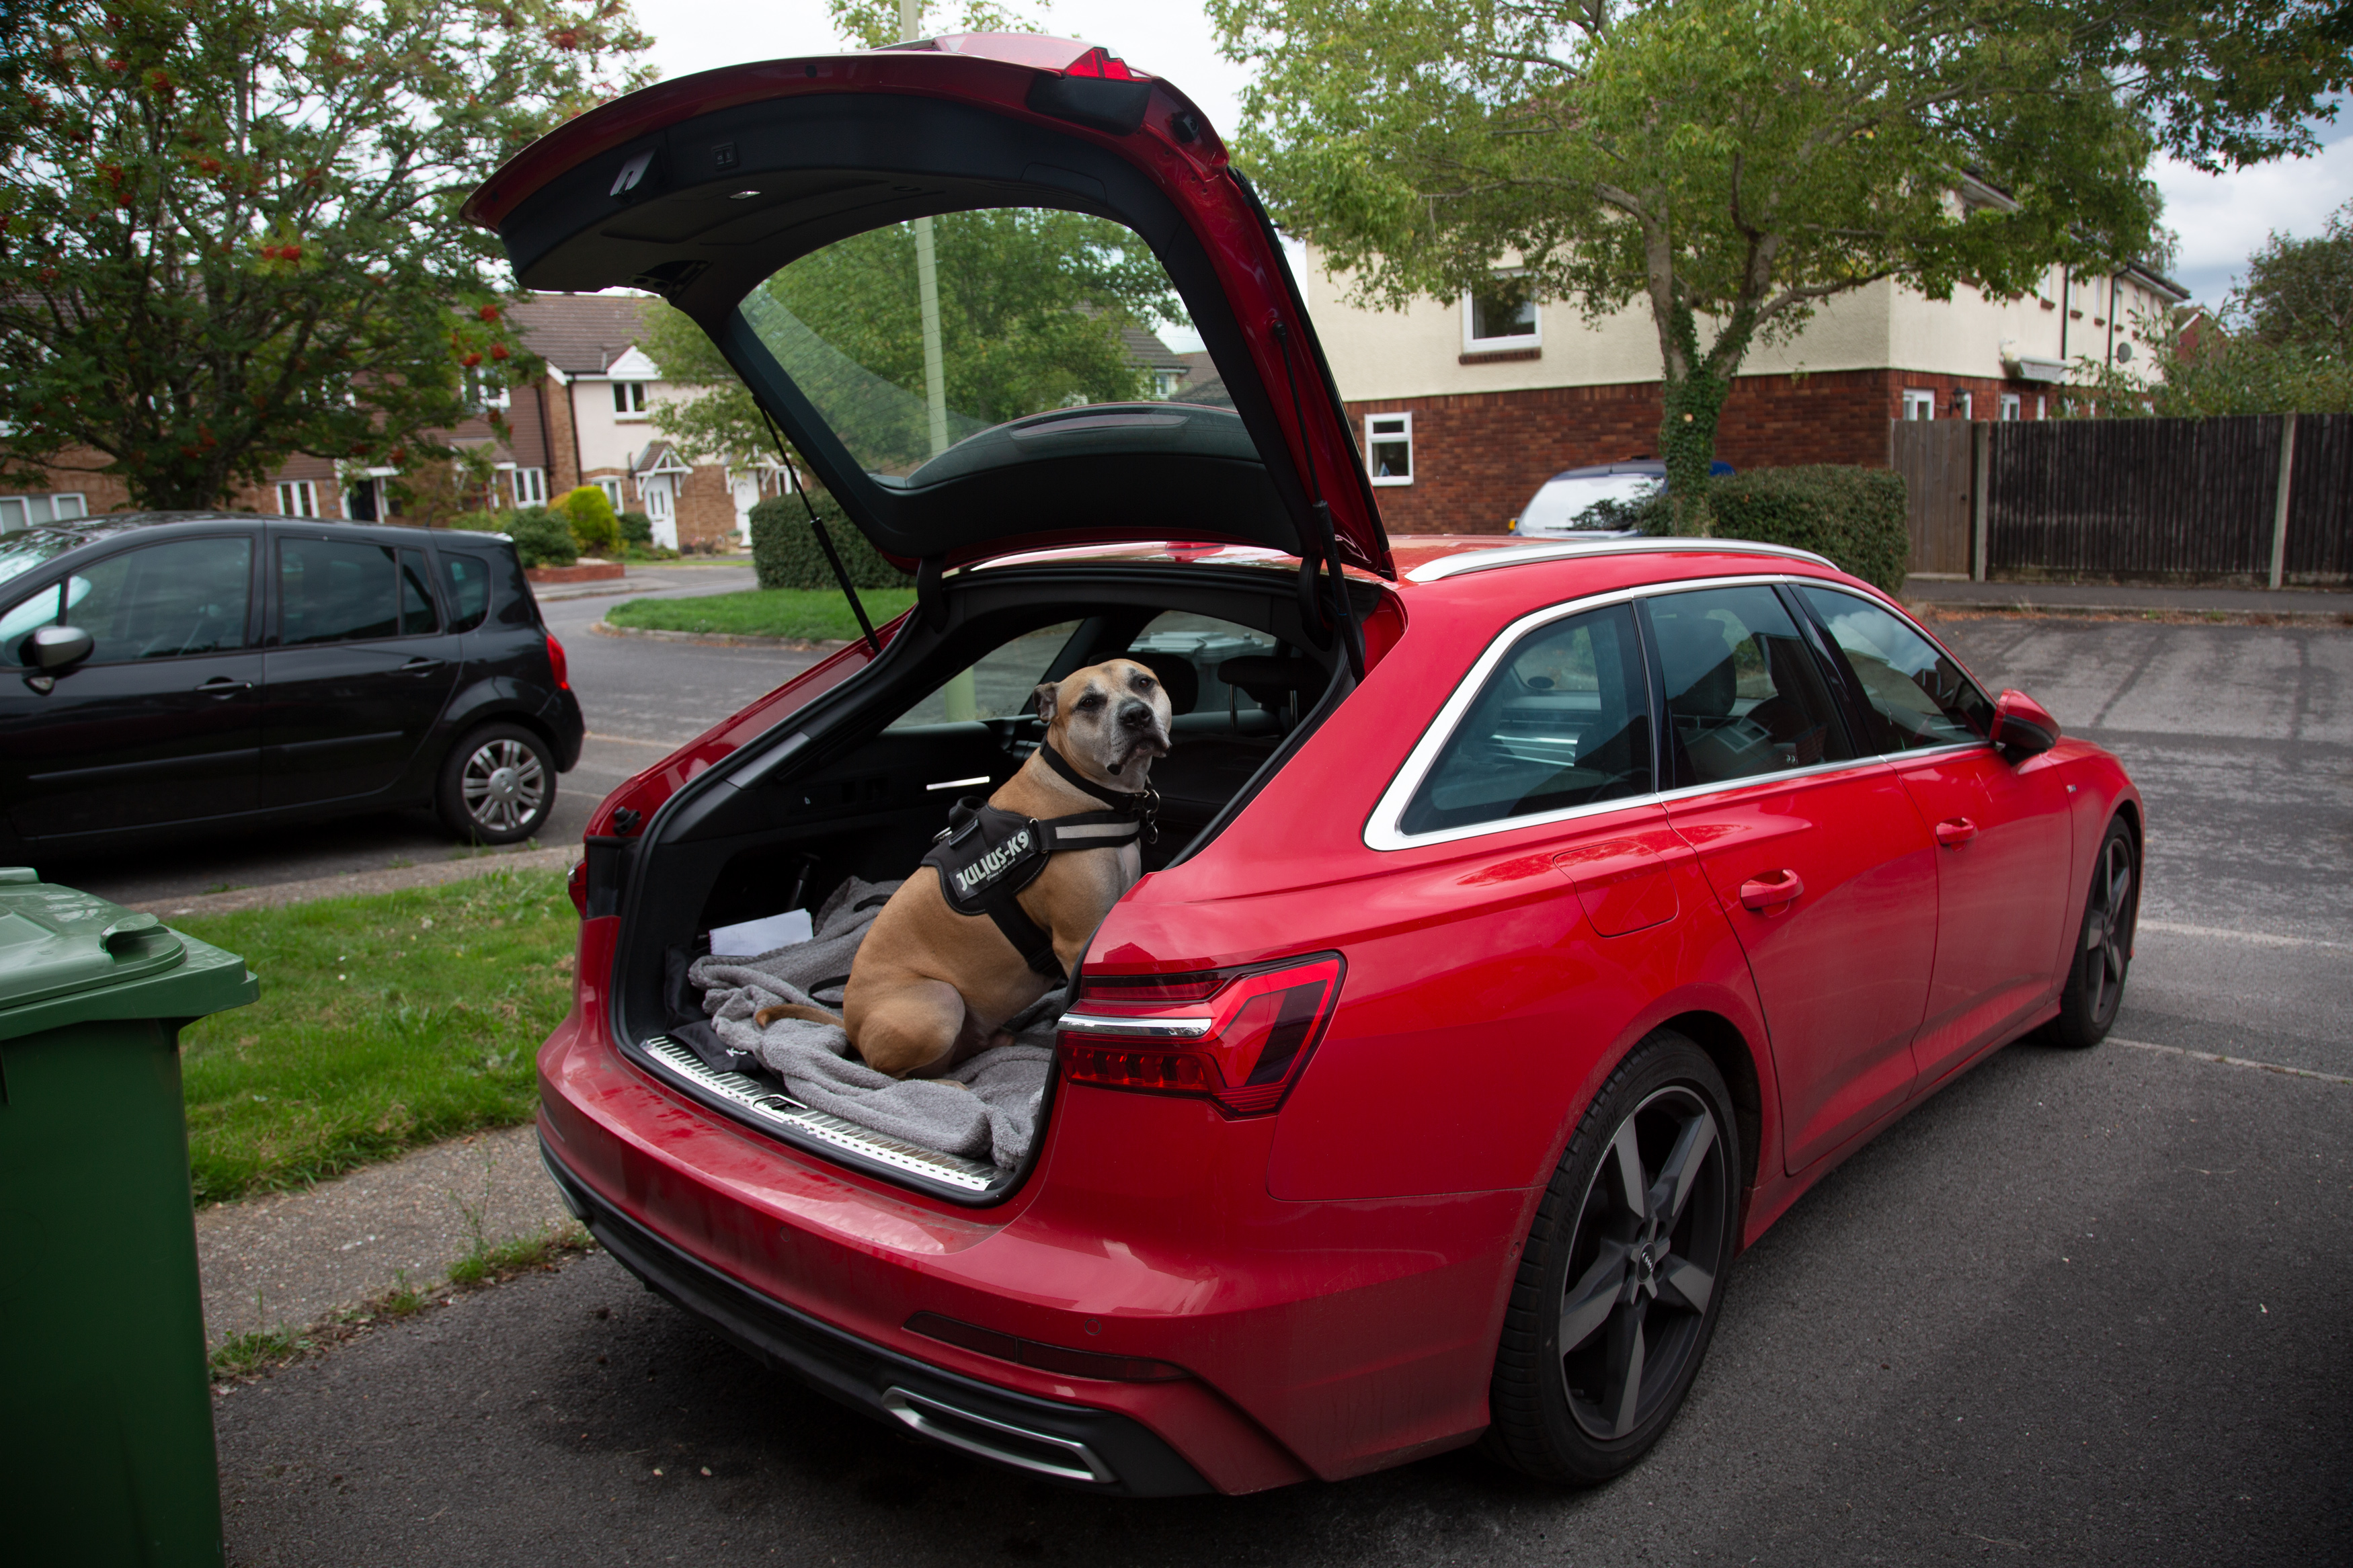 The A6 is a dog-friendly mode of transport